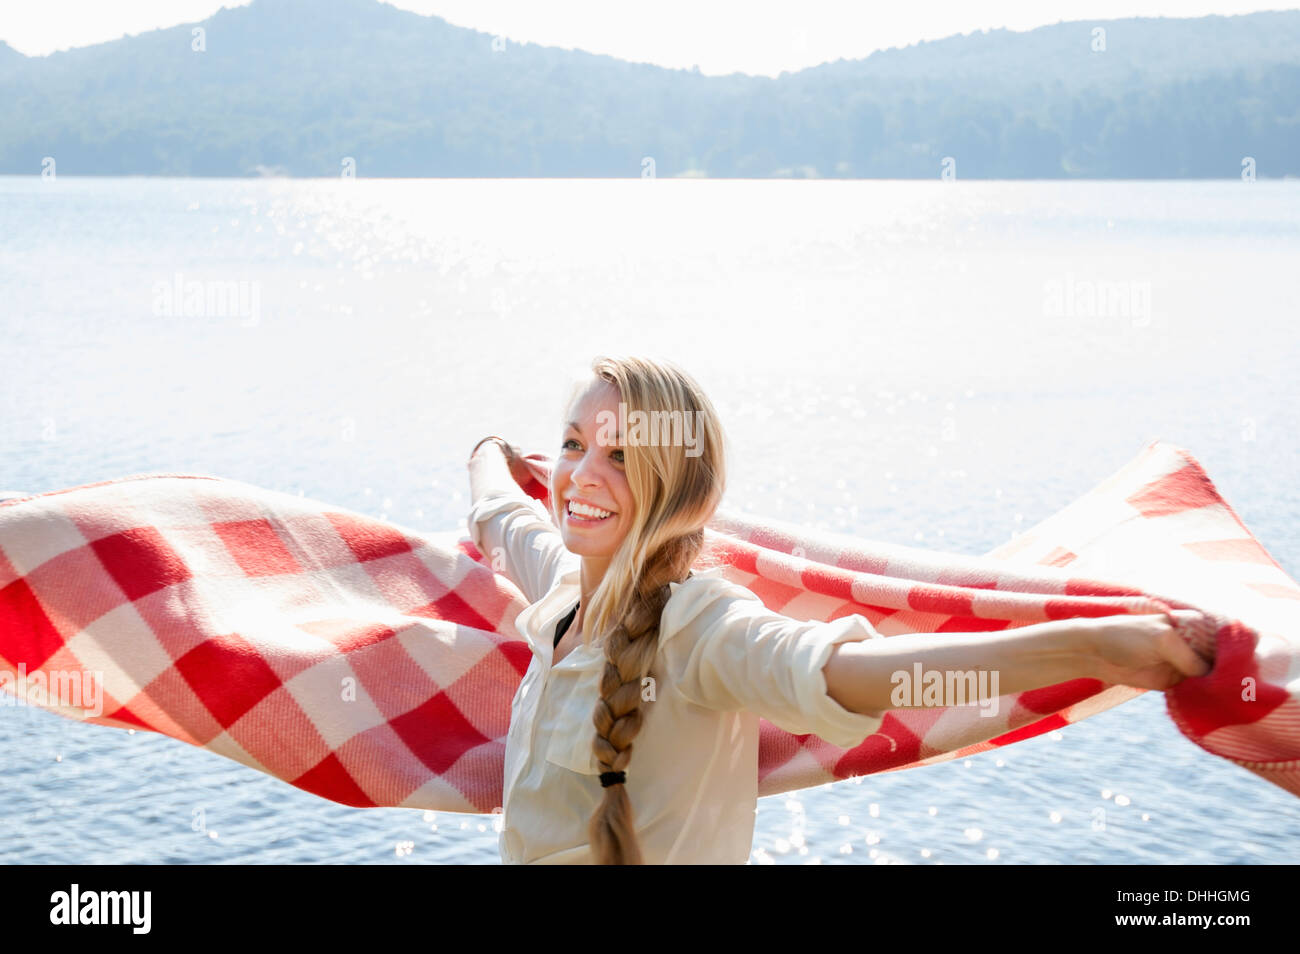 Young woman holding blanket by lake, Hadley, New York, USA - Stock Image